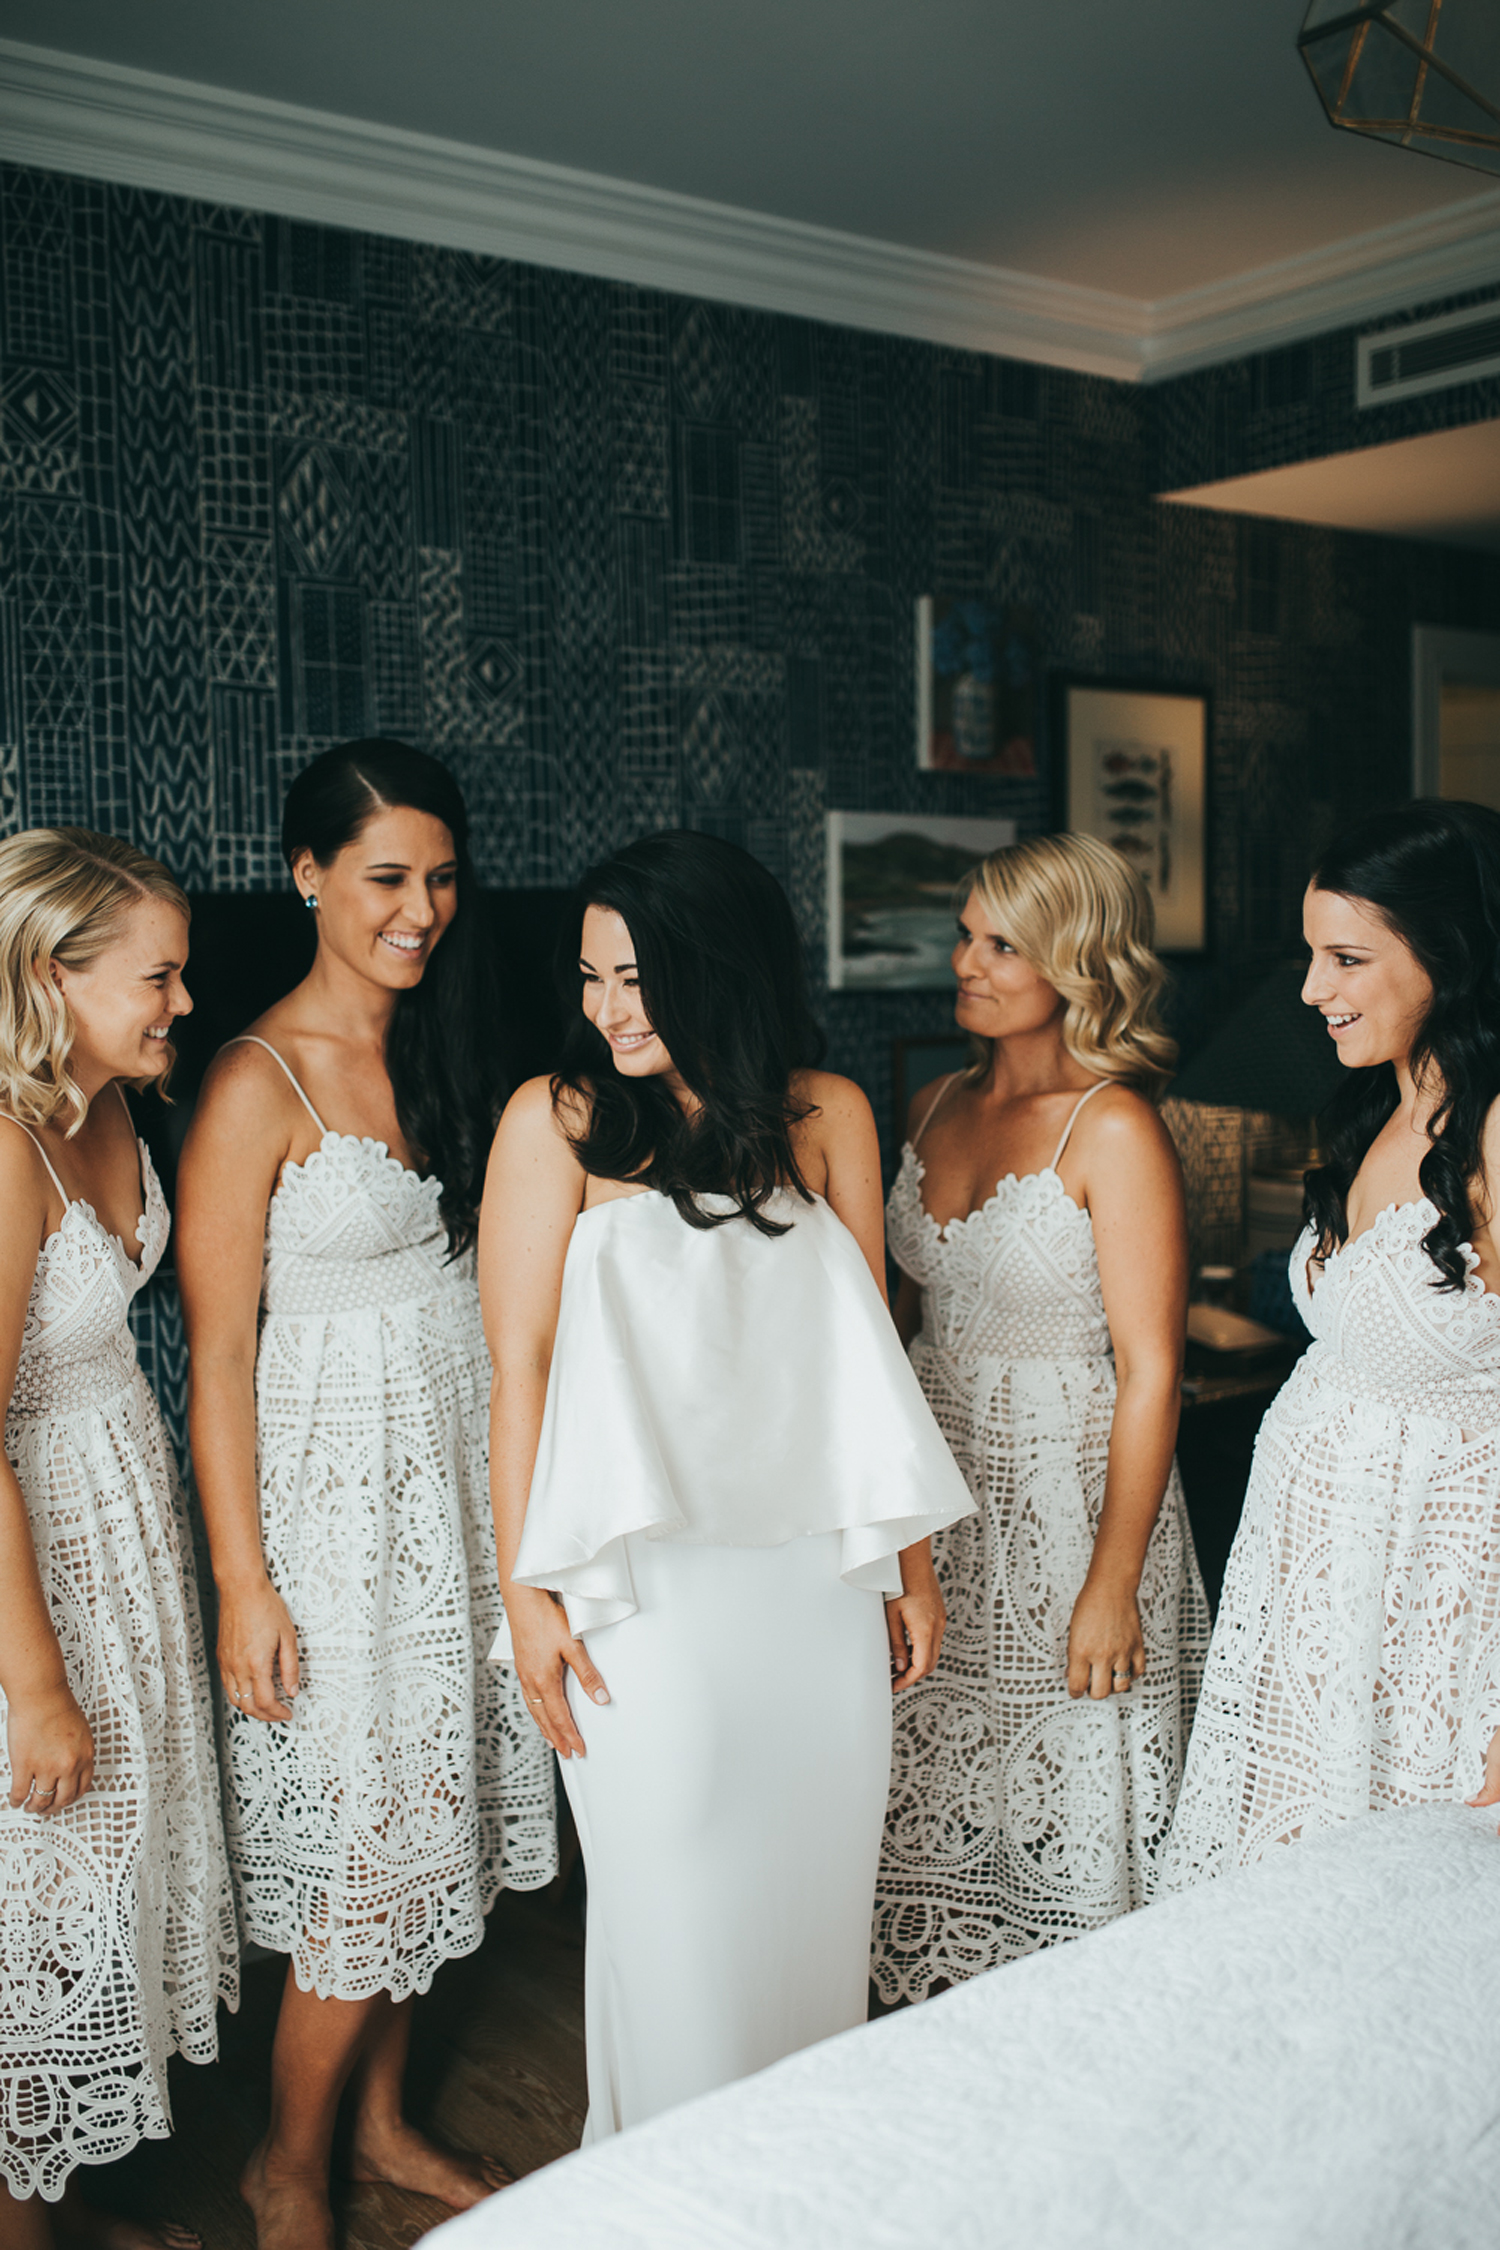 037-halcyon_house_byron_bay_wedding_photographer.jpg